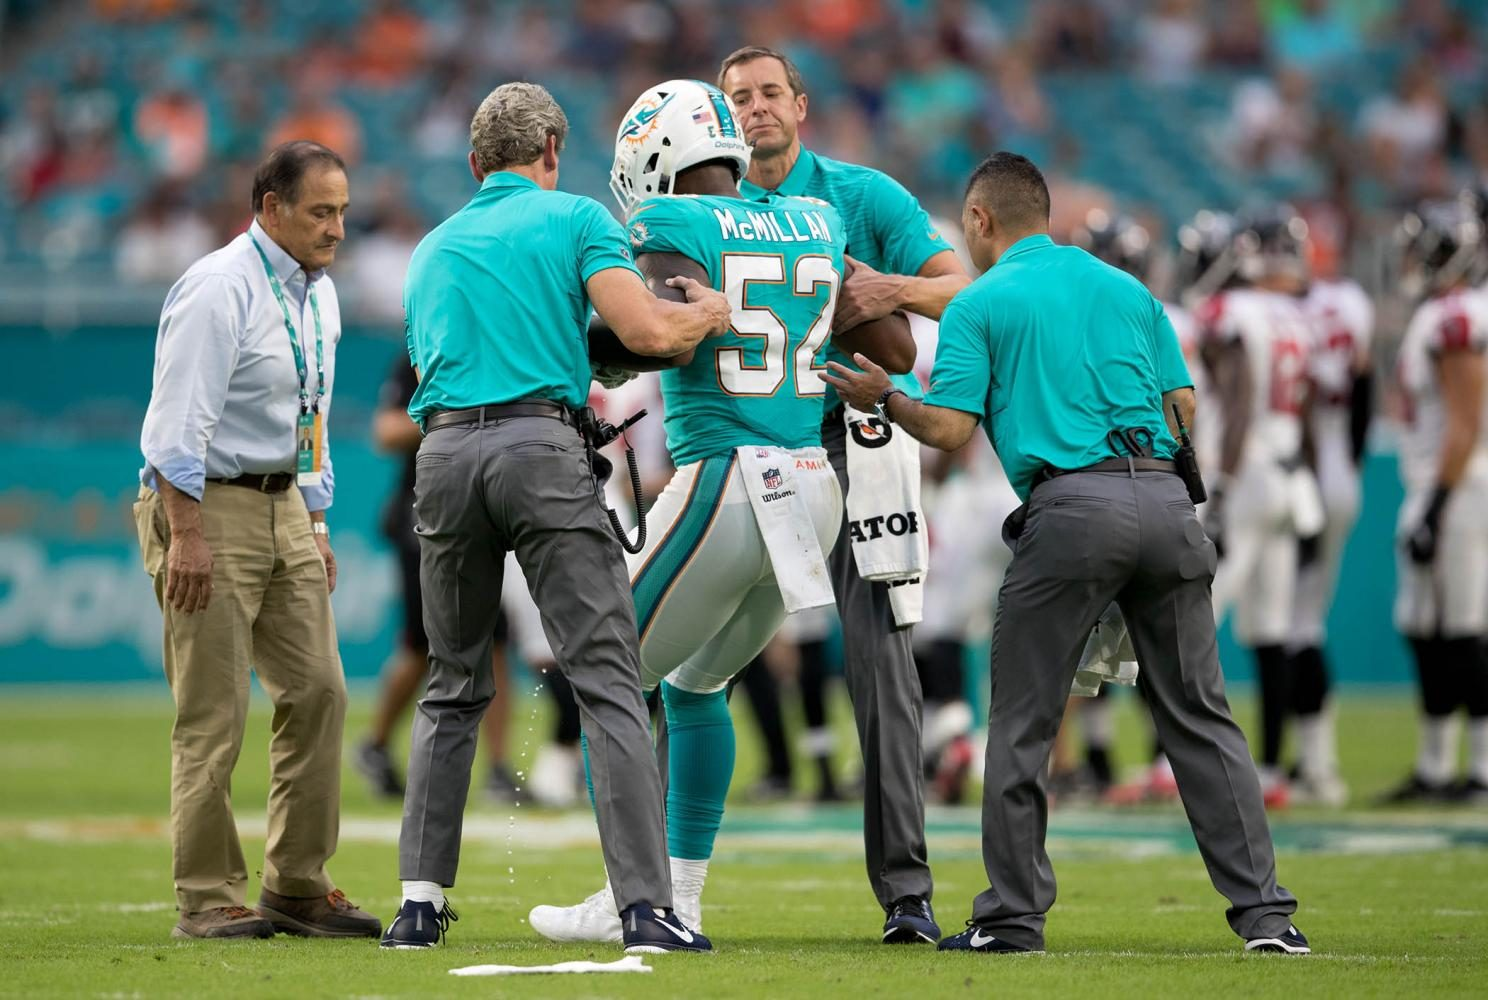 Miami Dolphins second round draft pick and projected starting middle linebacker Raekwon McMillan is helped off the field after tearing his ACL on the opening kickoff of the first game of the 2017 pre-season. He is out for the season.